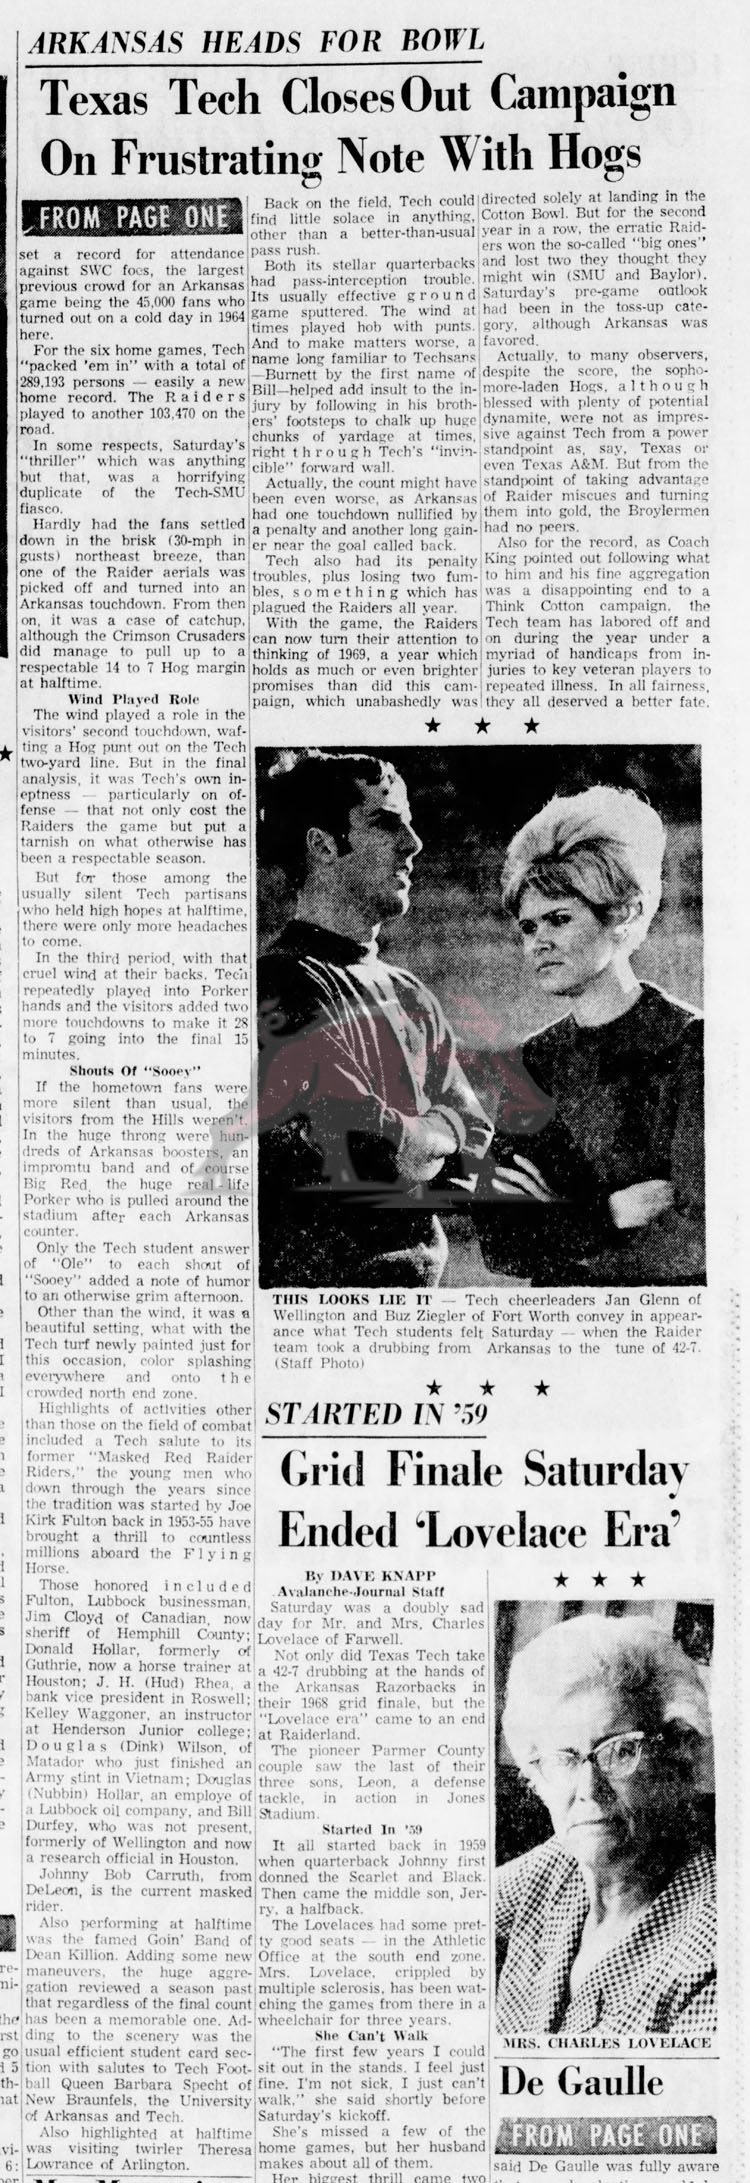 1968-11-24 Lubbock_Avalanche_Journal_Sun__Nov_24__1968 Texas Tech Side Part 2